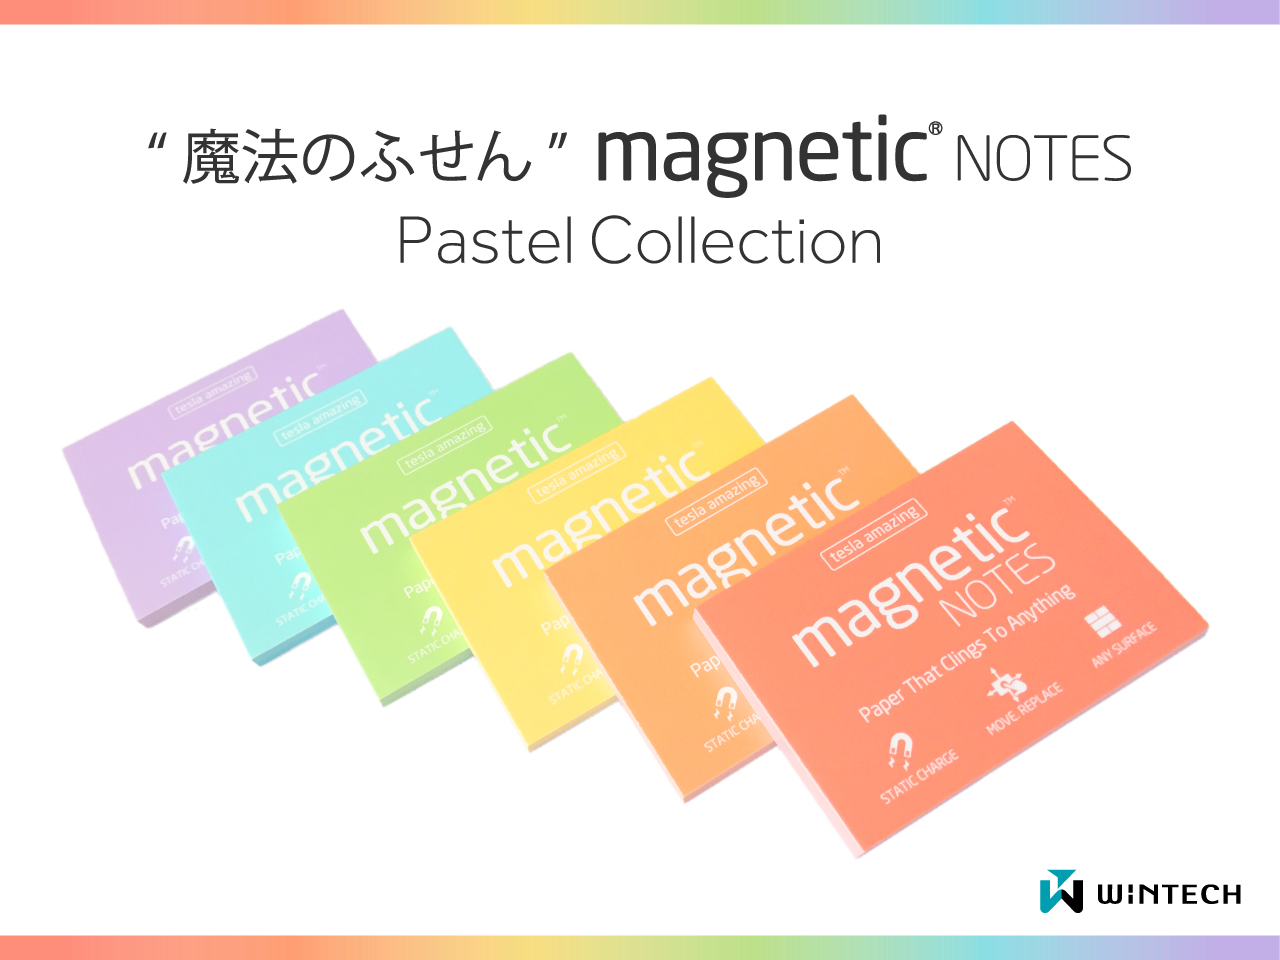 魔法のふせん magnetic NOTES Pastel Collection